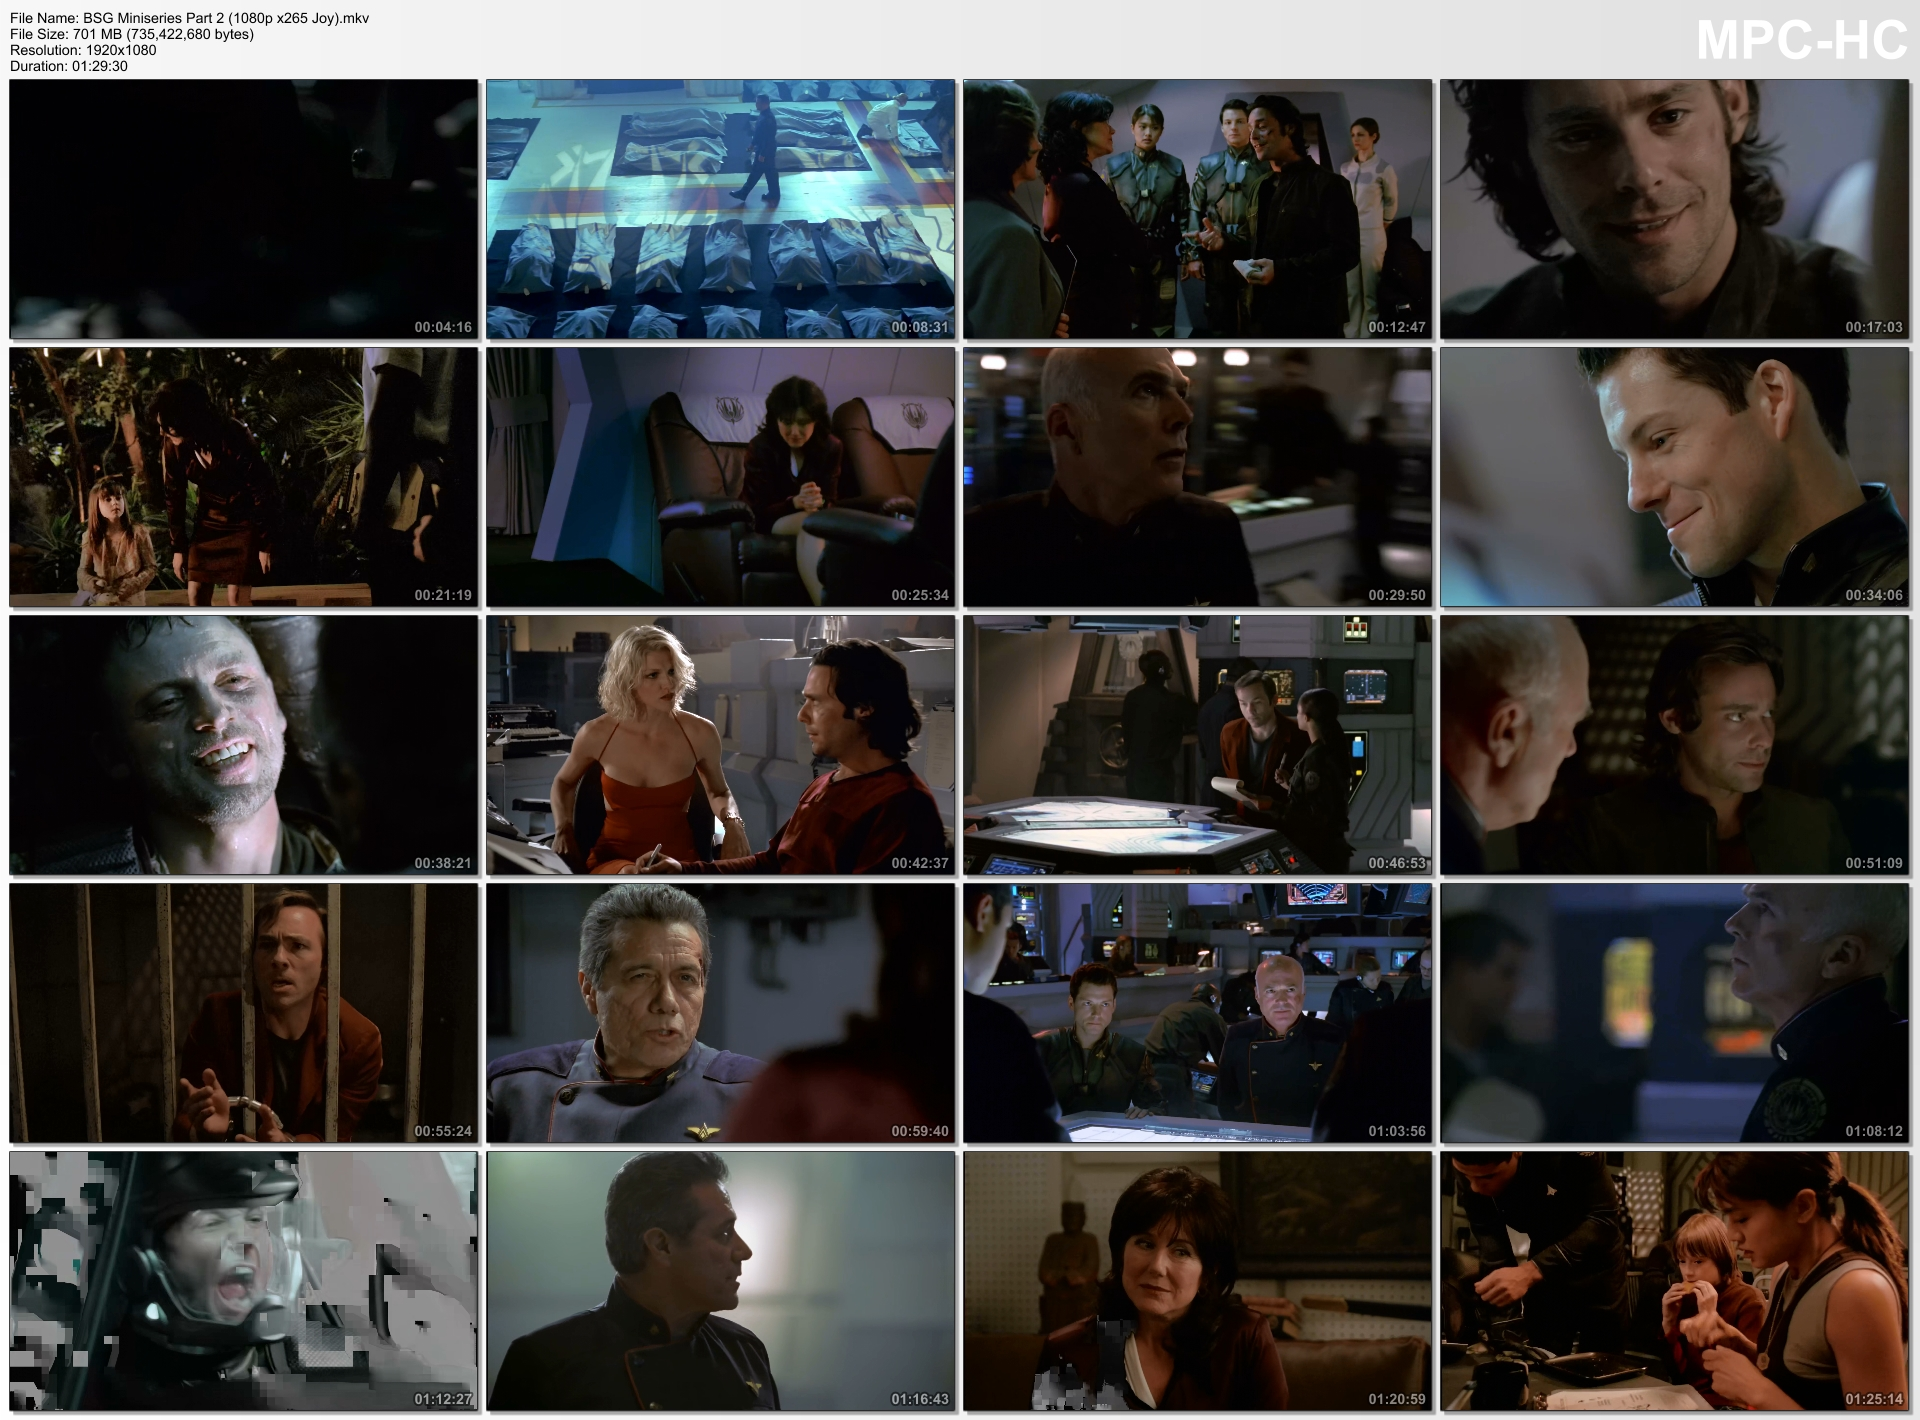 BSG_Miniseries_Part_2_1080p_x265_Joymkvt